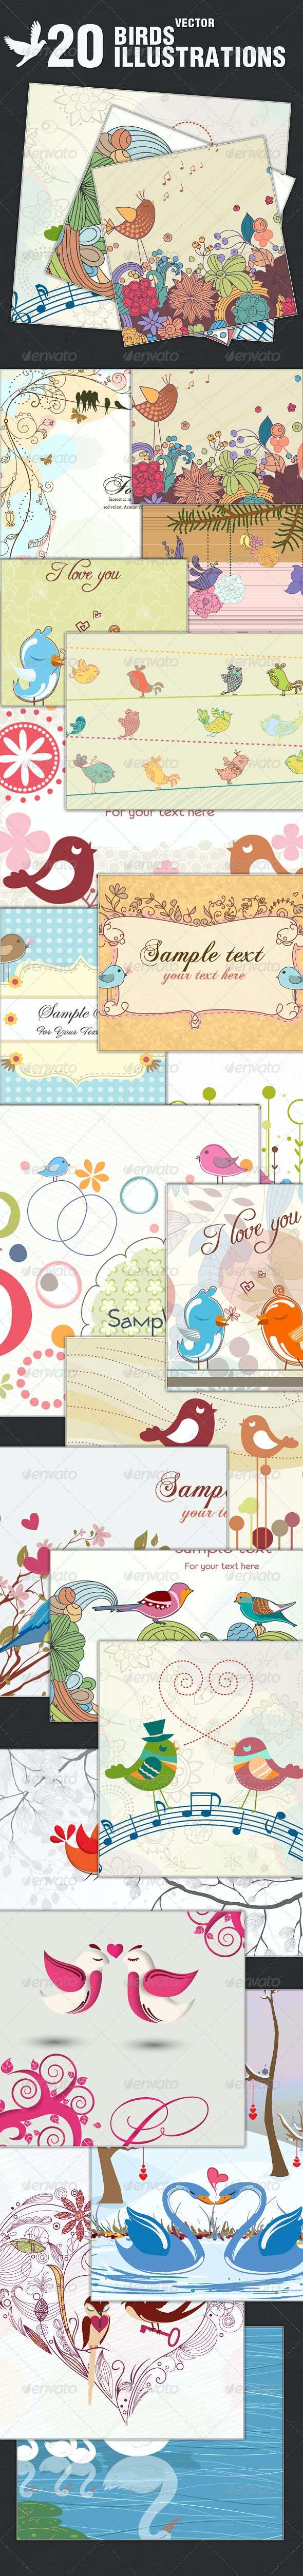 20 Vector Illustrations With Birds - Backgrounds Decorative